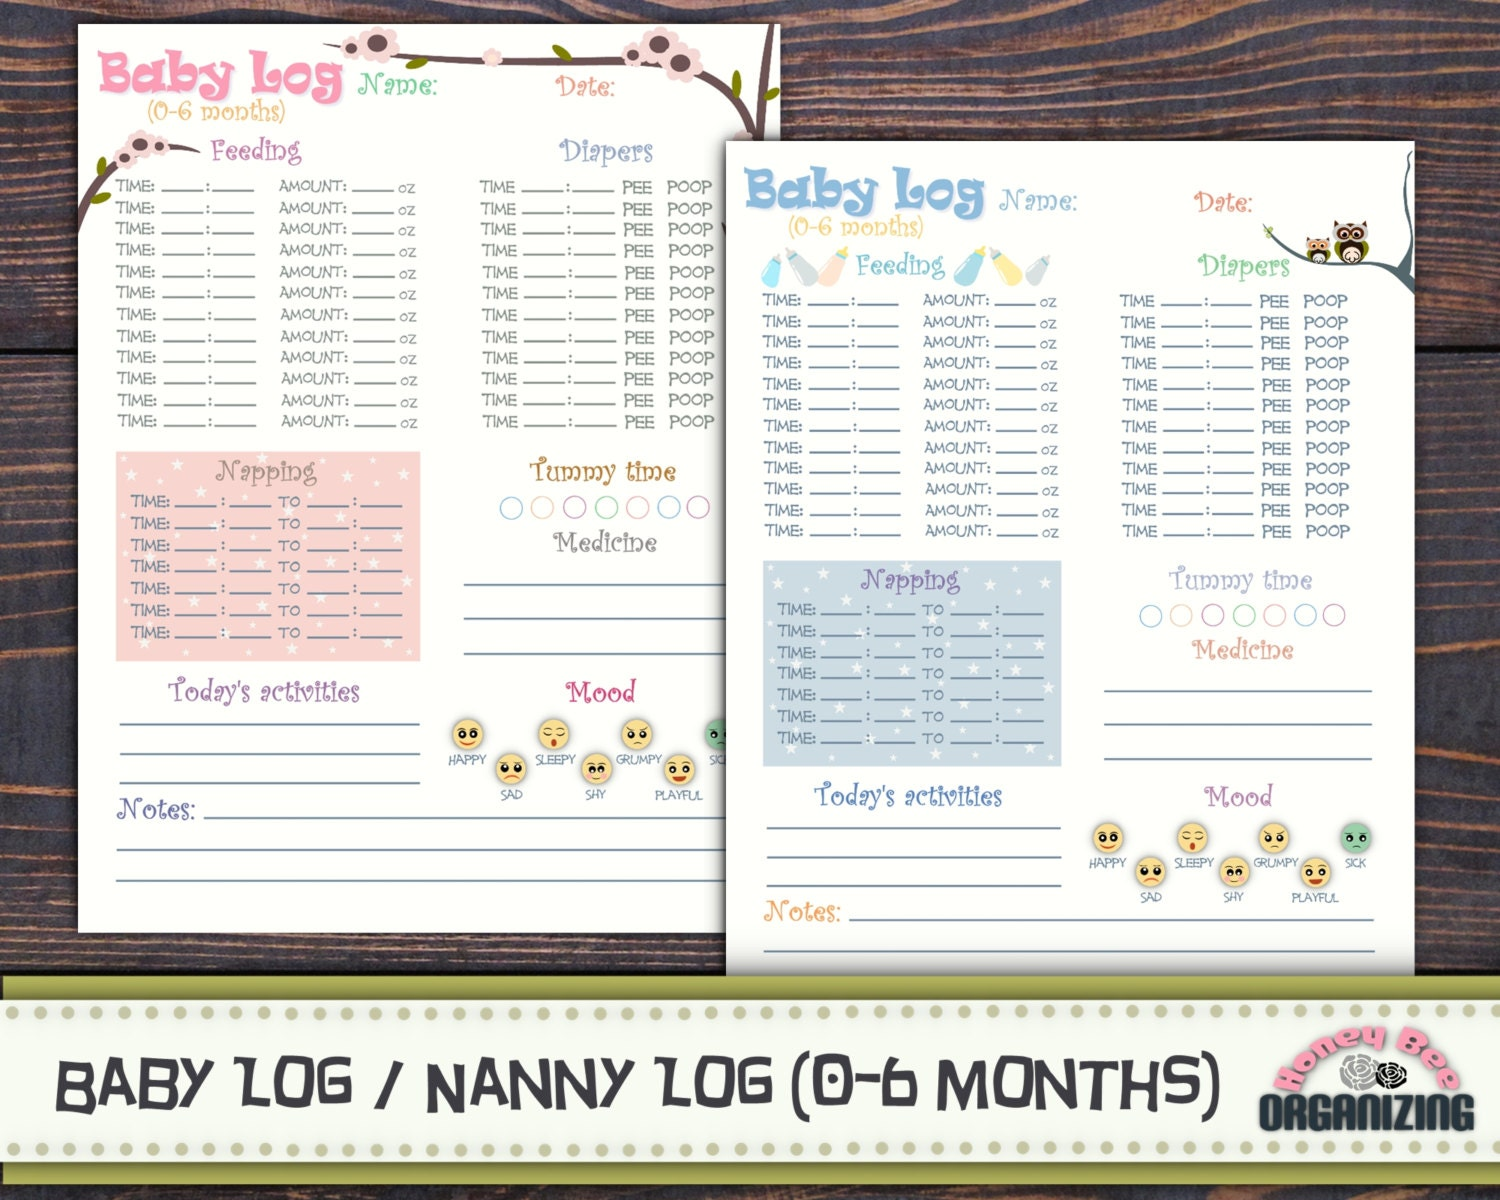 babysitter gift baby log 0 6 months nanny log baby s day schedule planner babycare log printable childcare log babysitter log infant care log